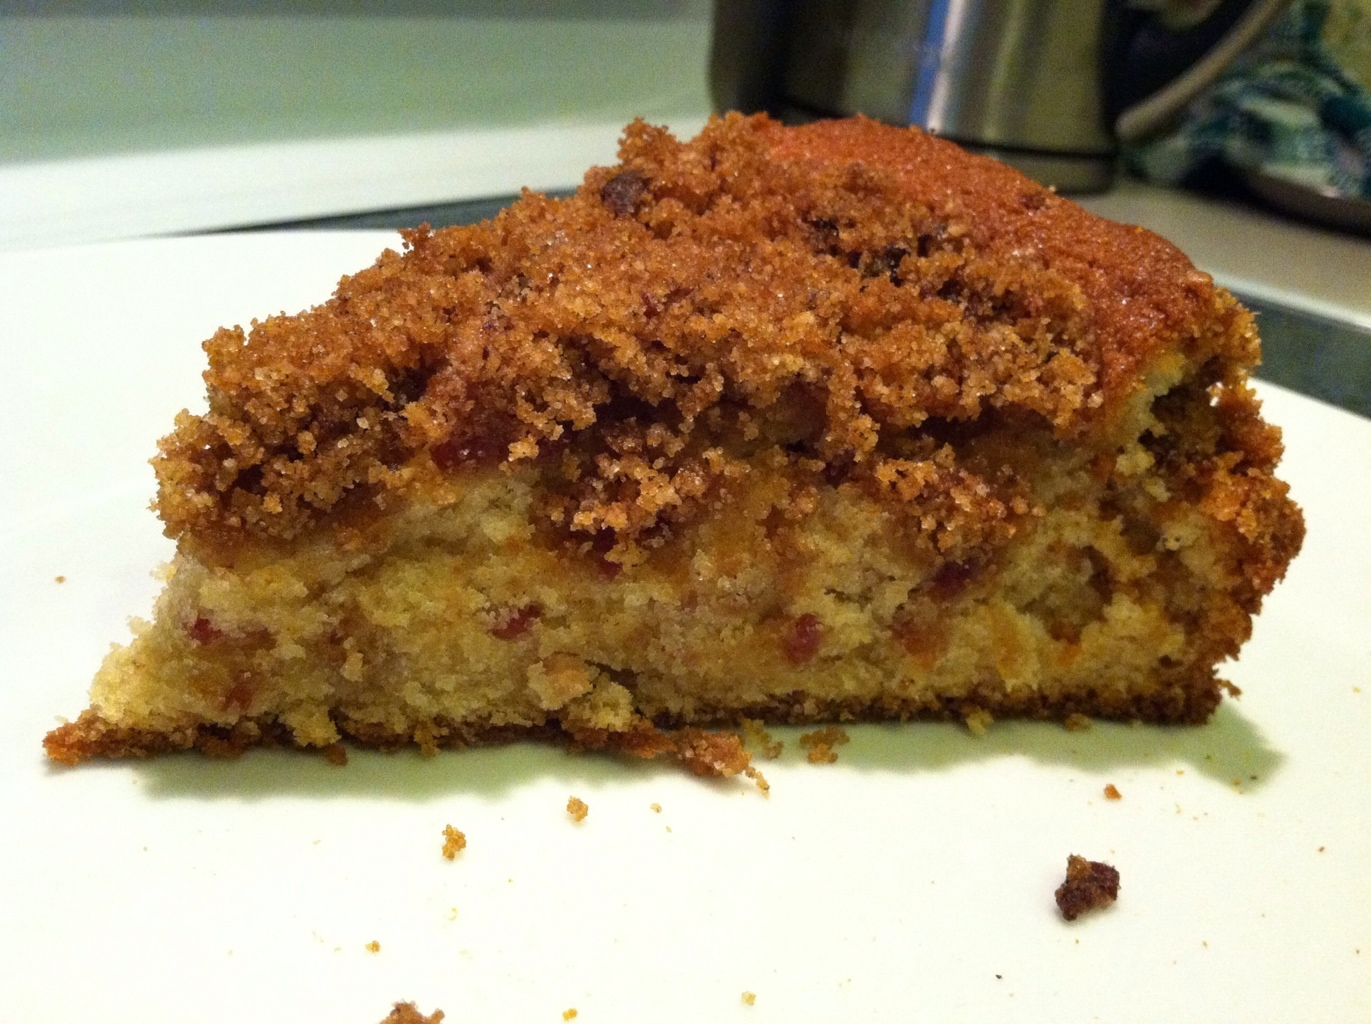 ... product – Maple Bacon Coffee Cake with Maple Bacon Streusel Topping